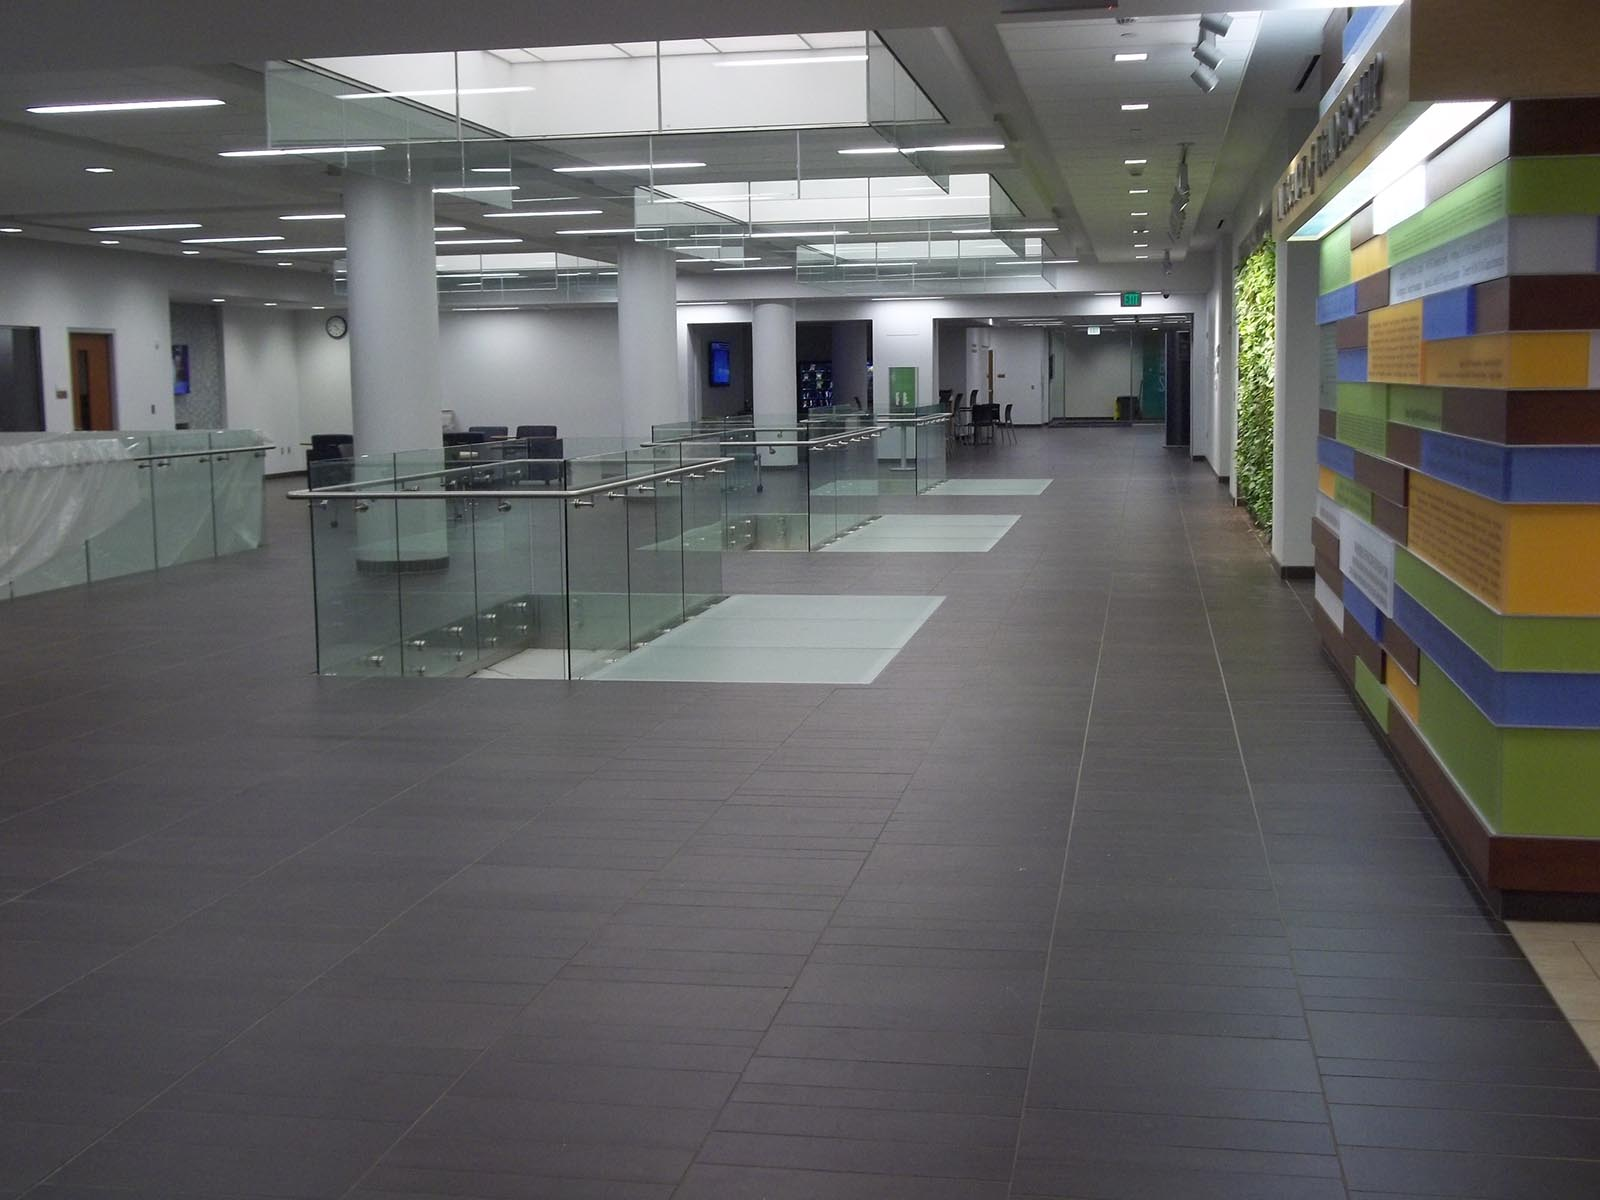 Canisius College Science Hall Case Study - Mosa Tile Installation